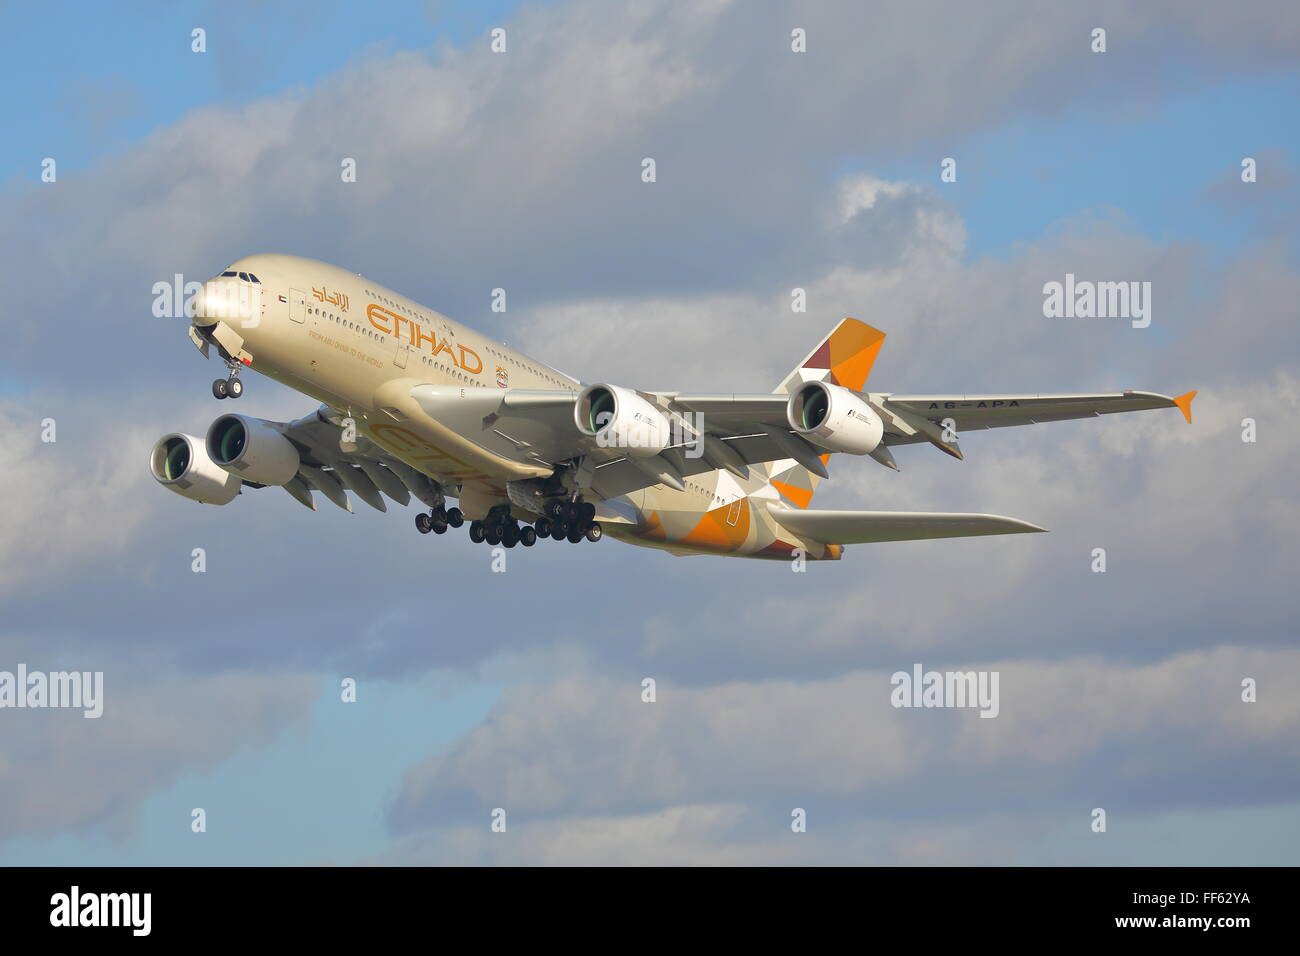 Etihad Airways Airbus A380-800 A6-APA approaching London Heathrow Airport, UK - Stock Image